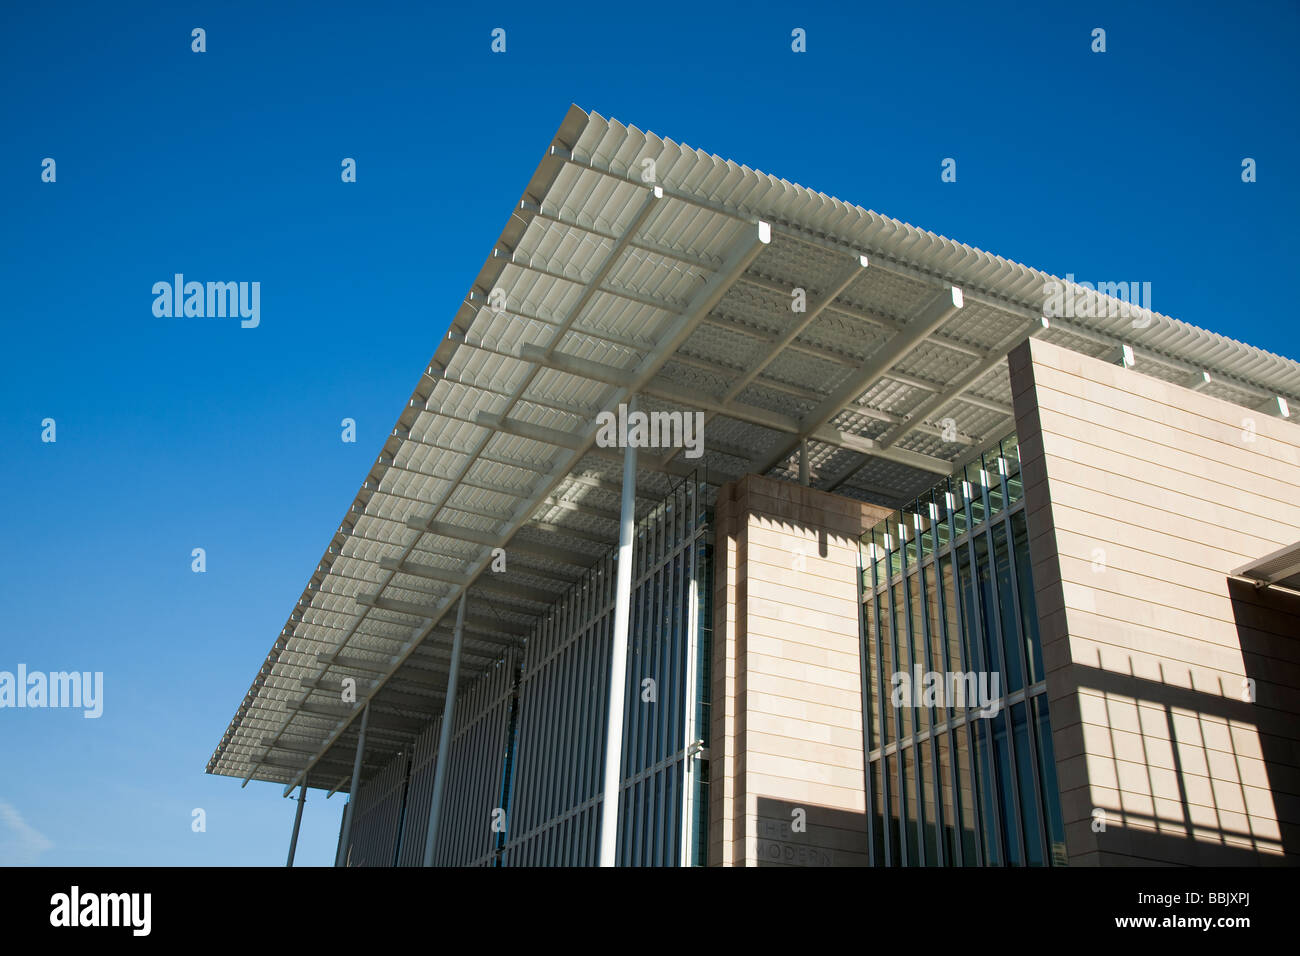 CHICAGO Illinois Detail of architecture and design of Modern Wing addition to Art Institute museum - Stock Image